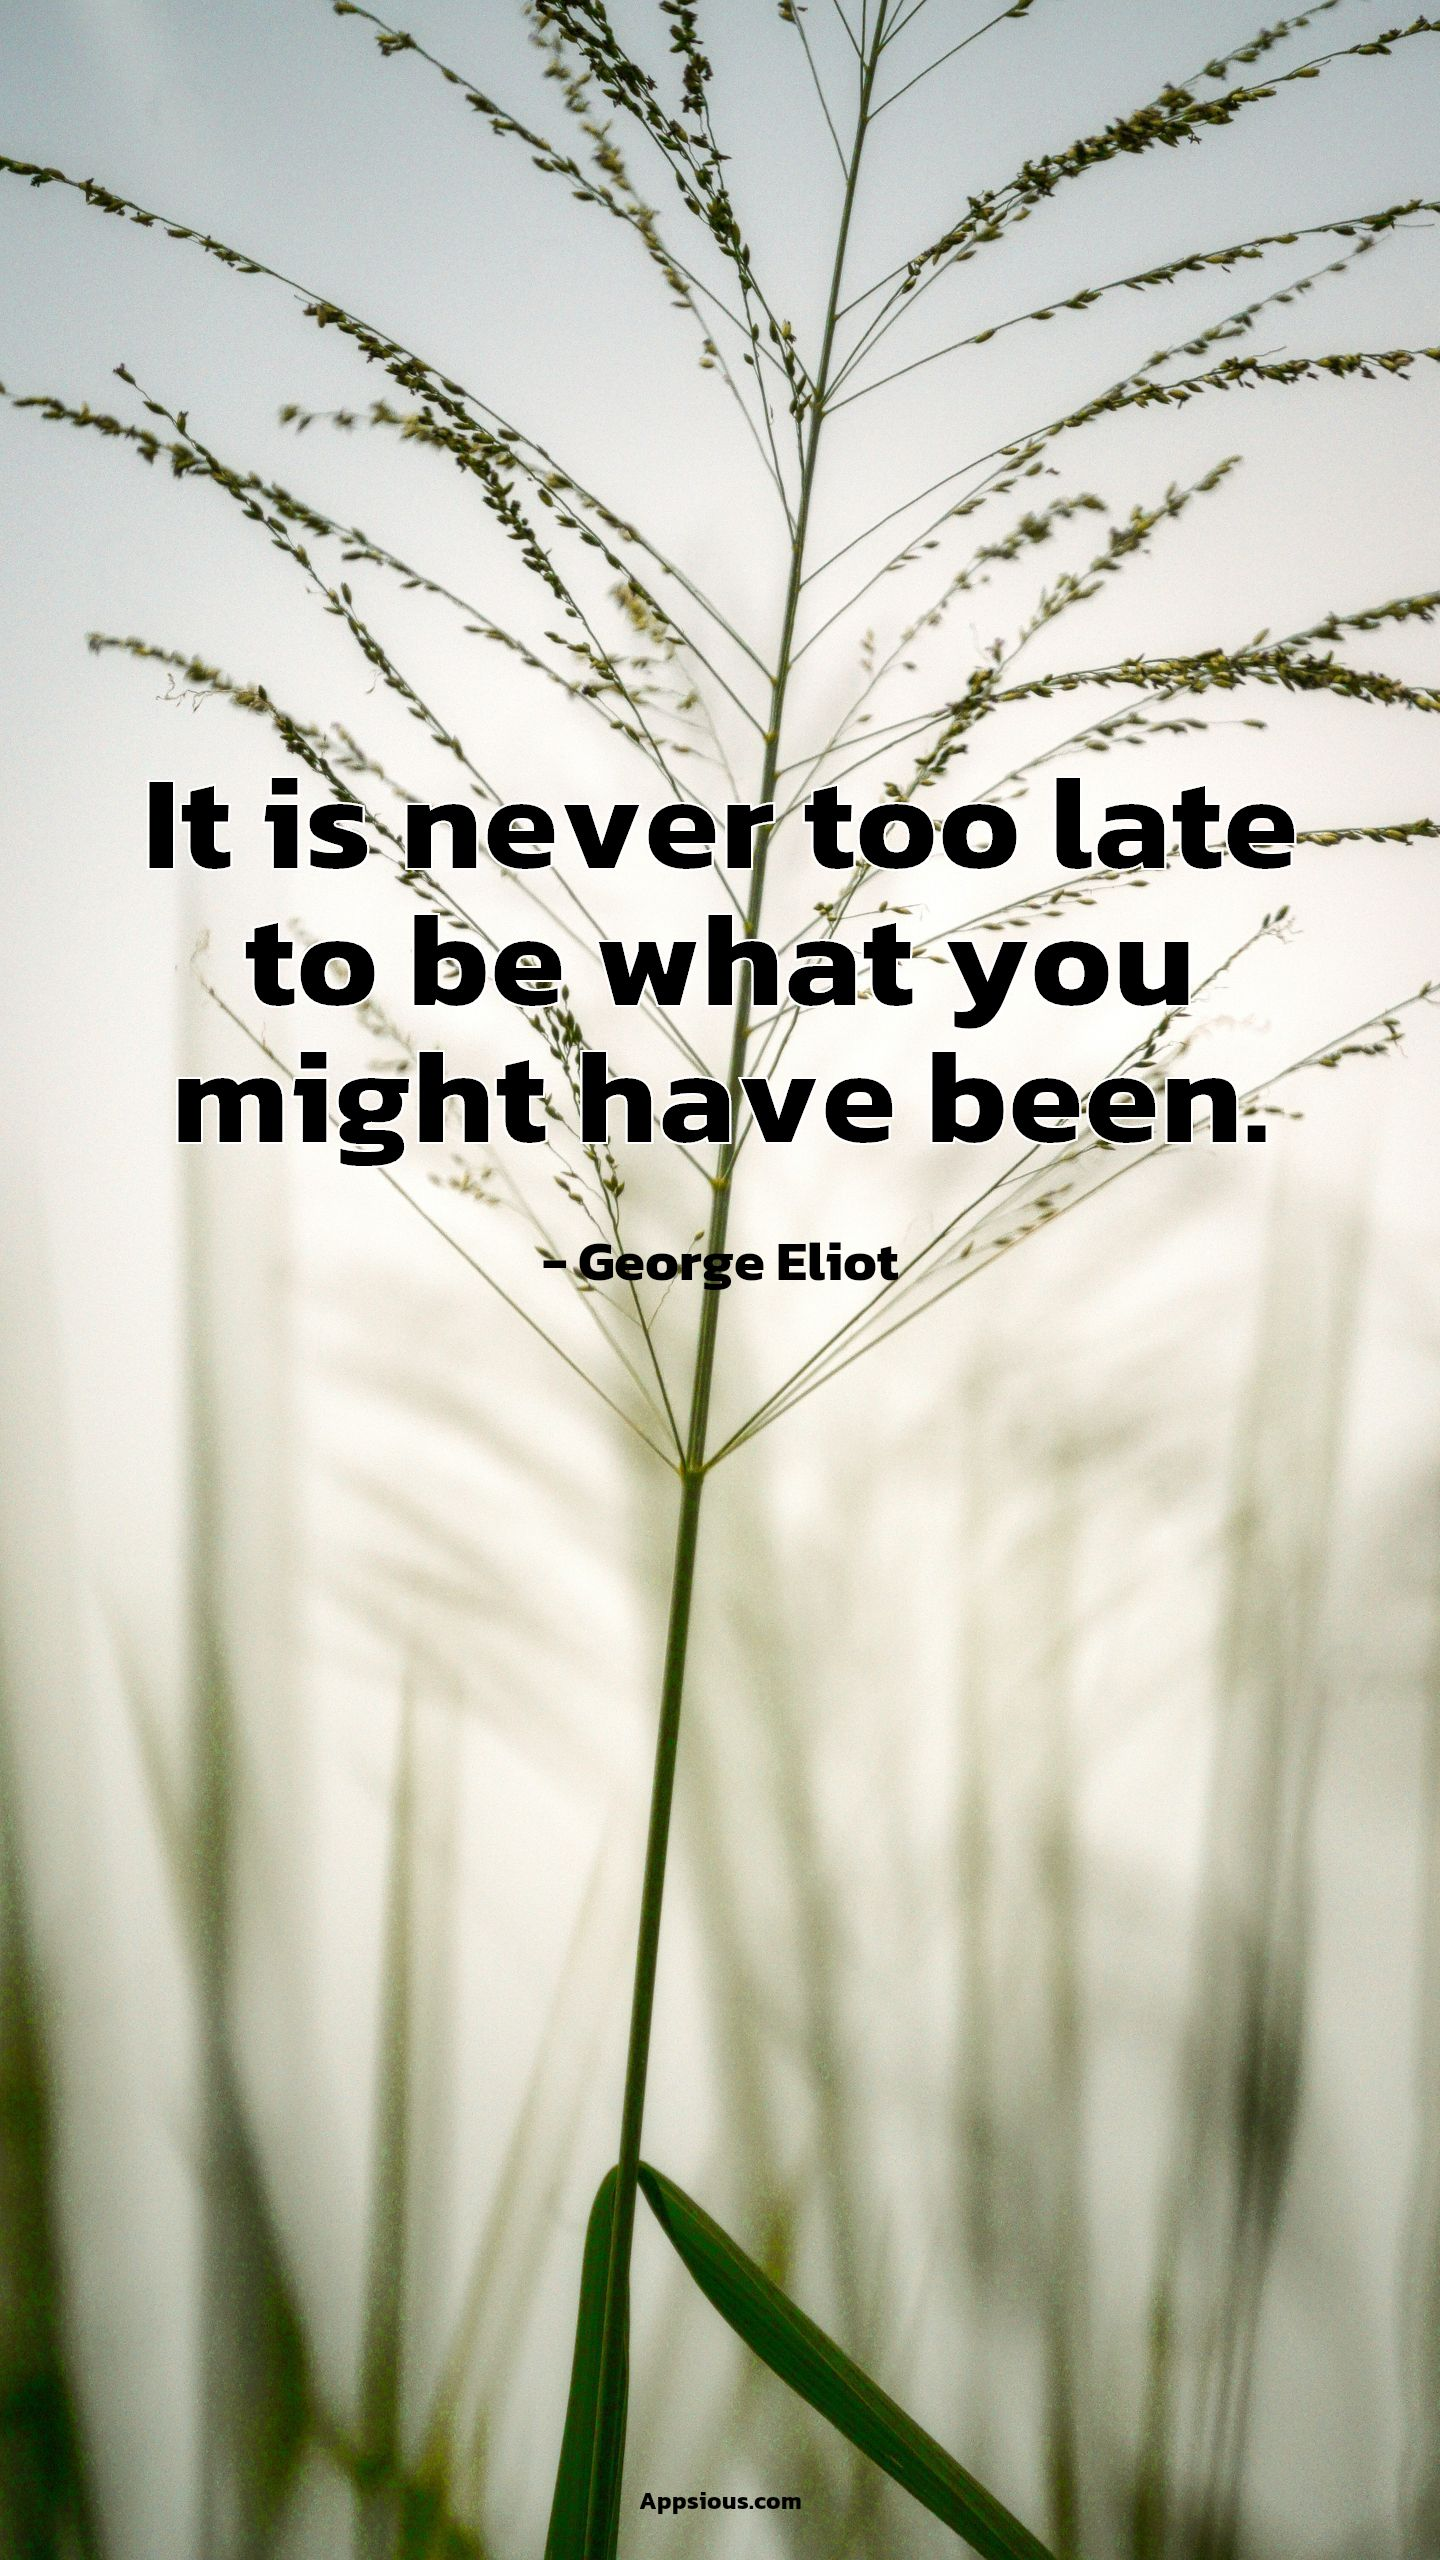 It is never too late to be what you might have been.